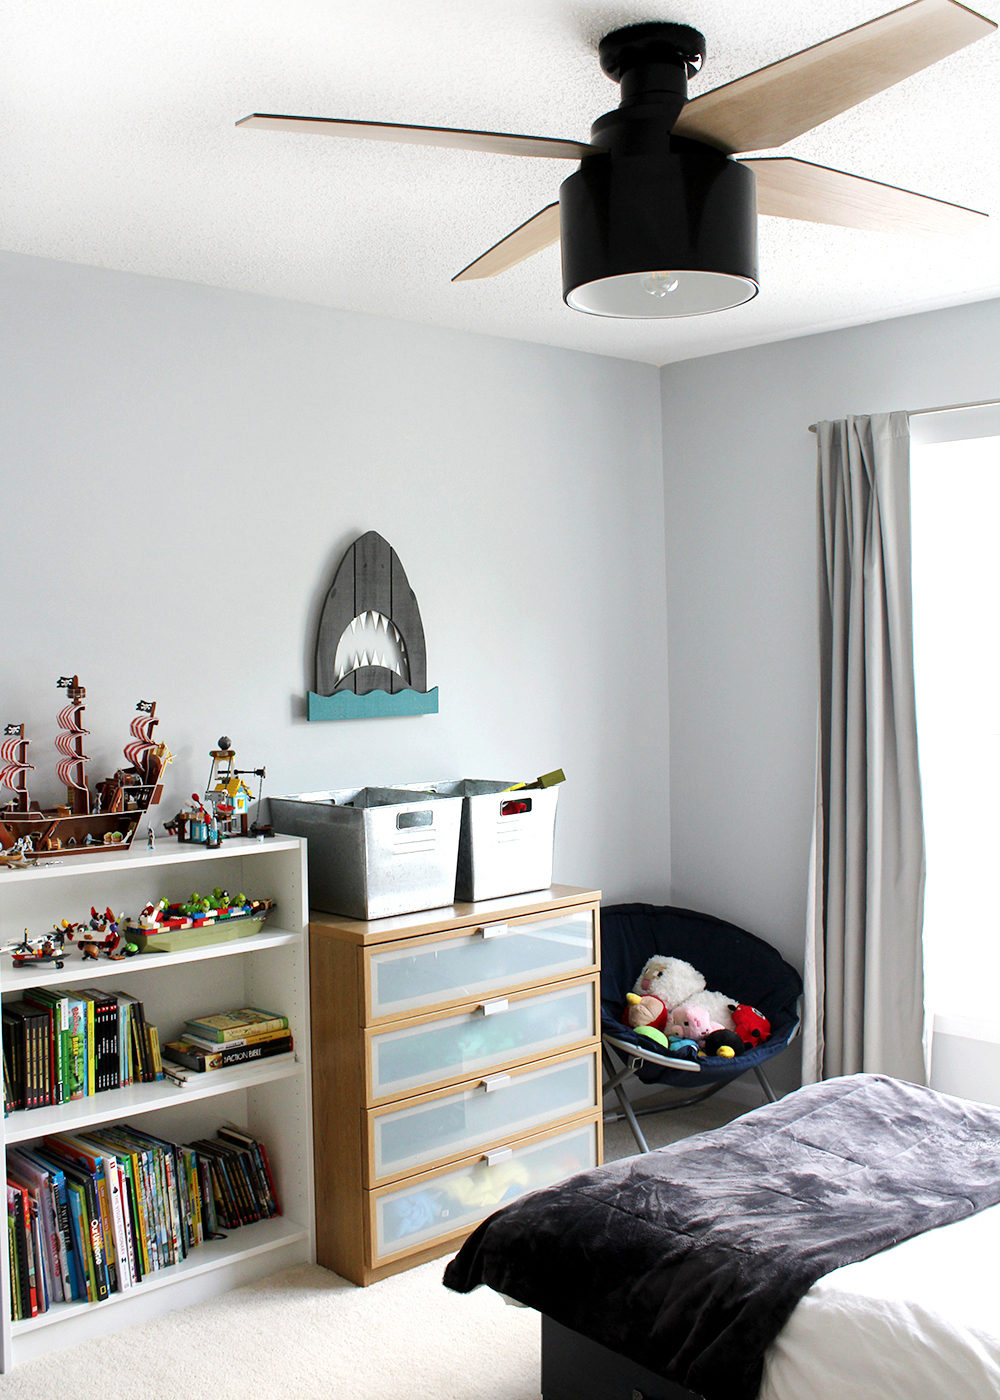 8 Modern-Rustic Ceiling Fans for under $250 | Top 10 Articles of the Year on Tag & Tibby